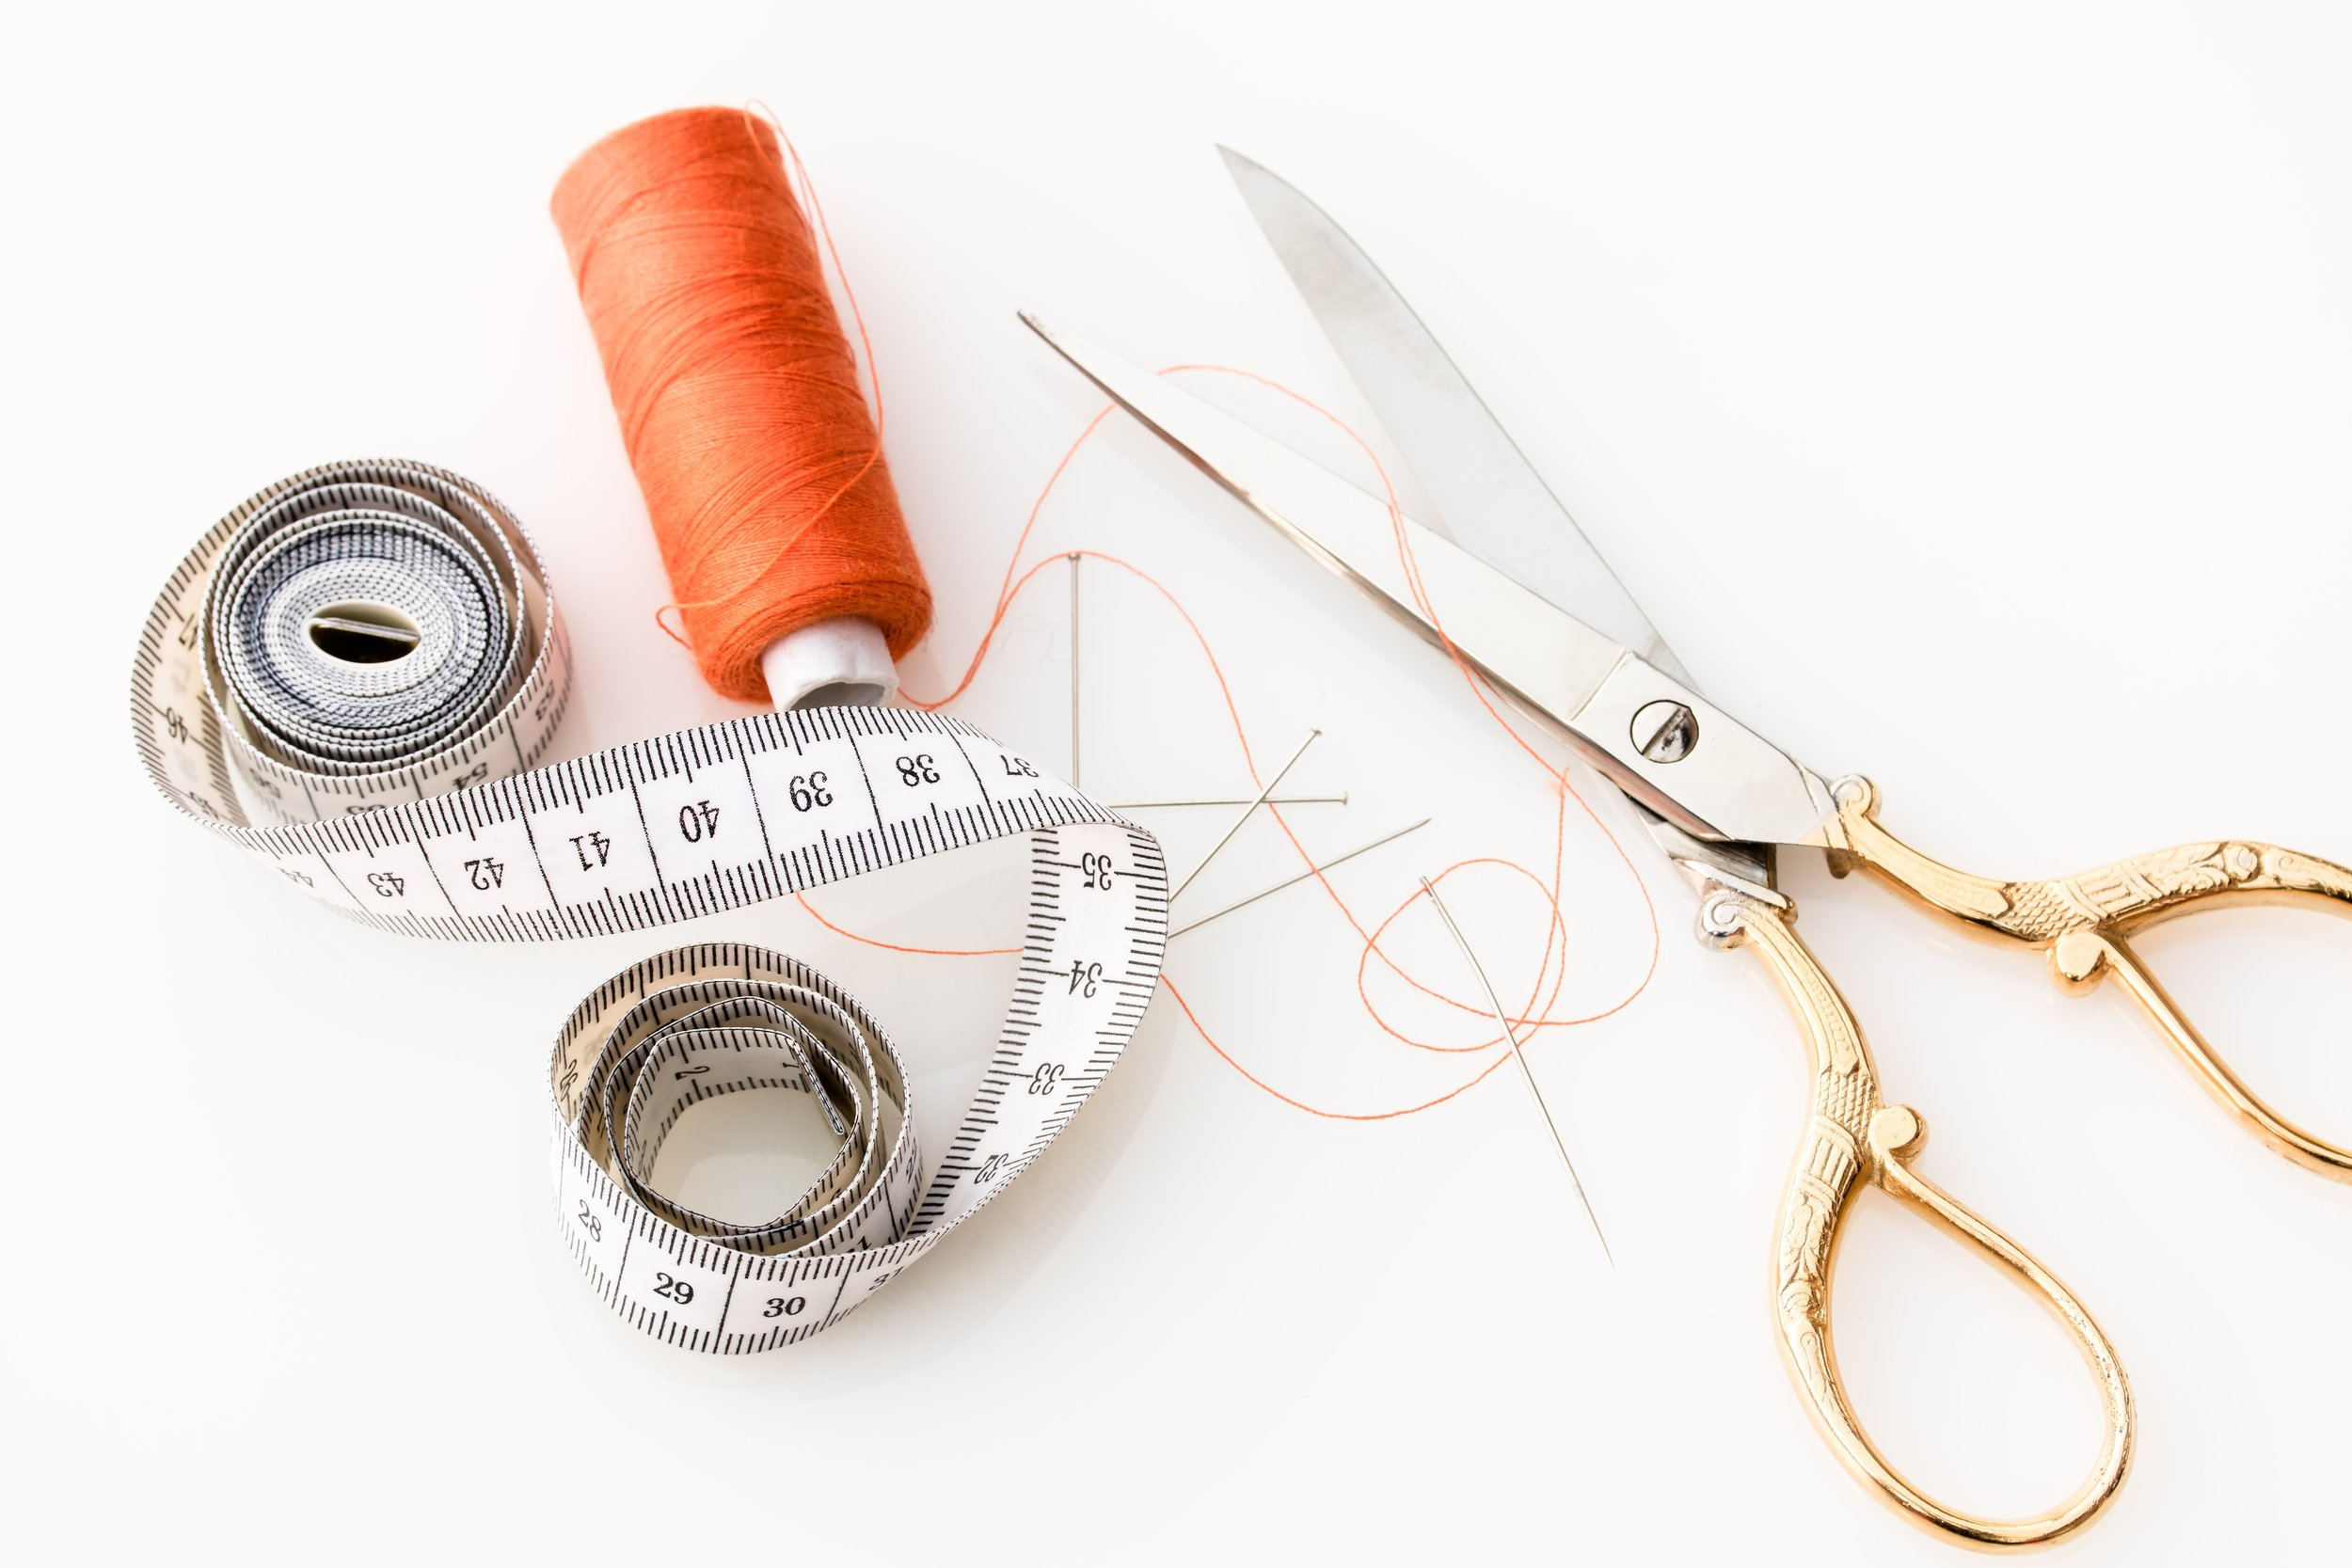 fabric-scissors-needle-needles-Pixabay.jpg